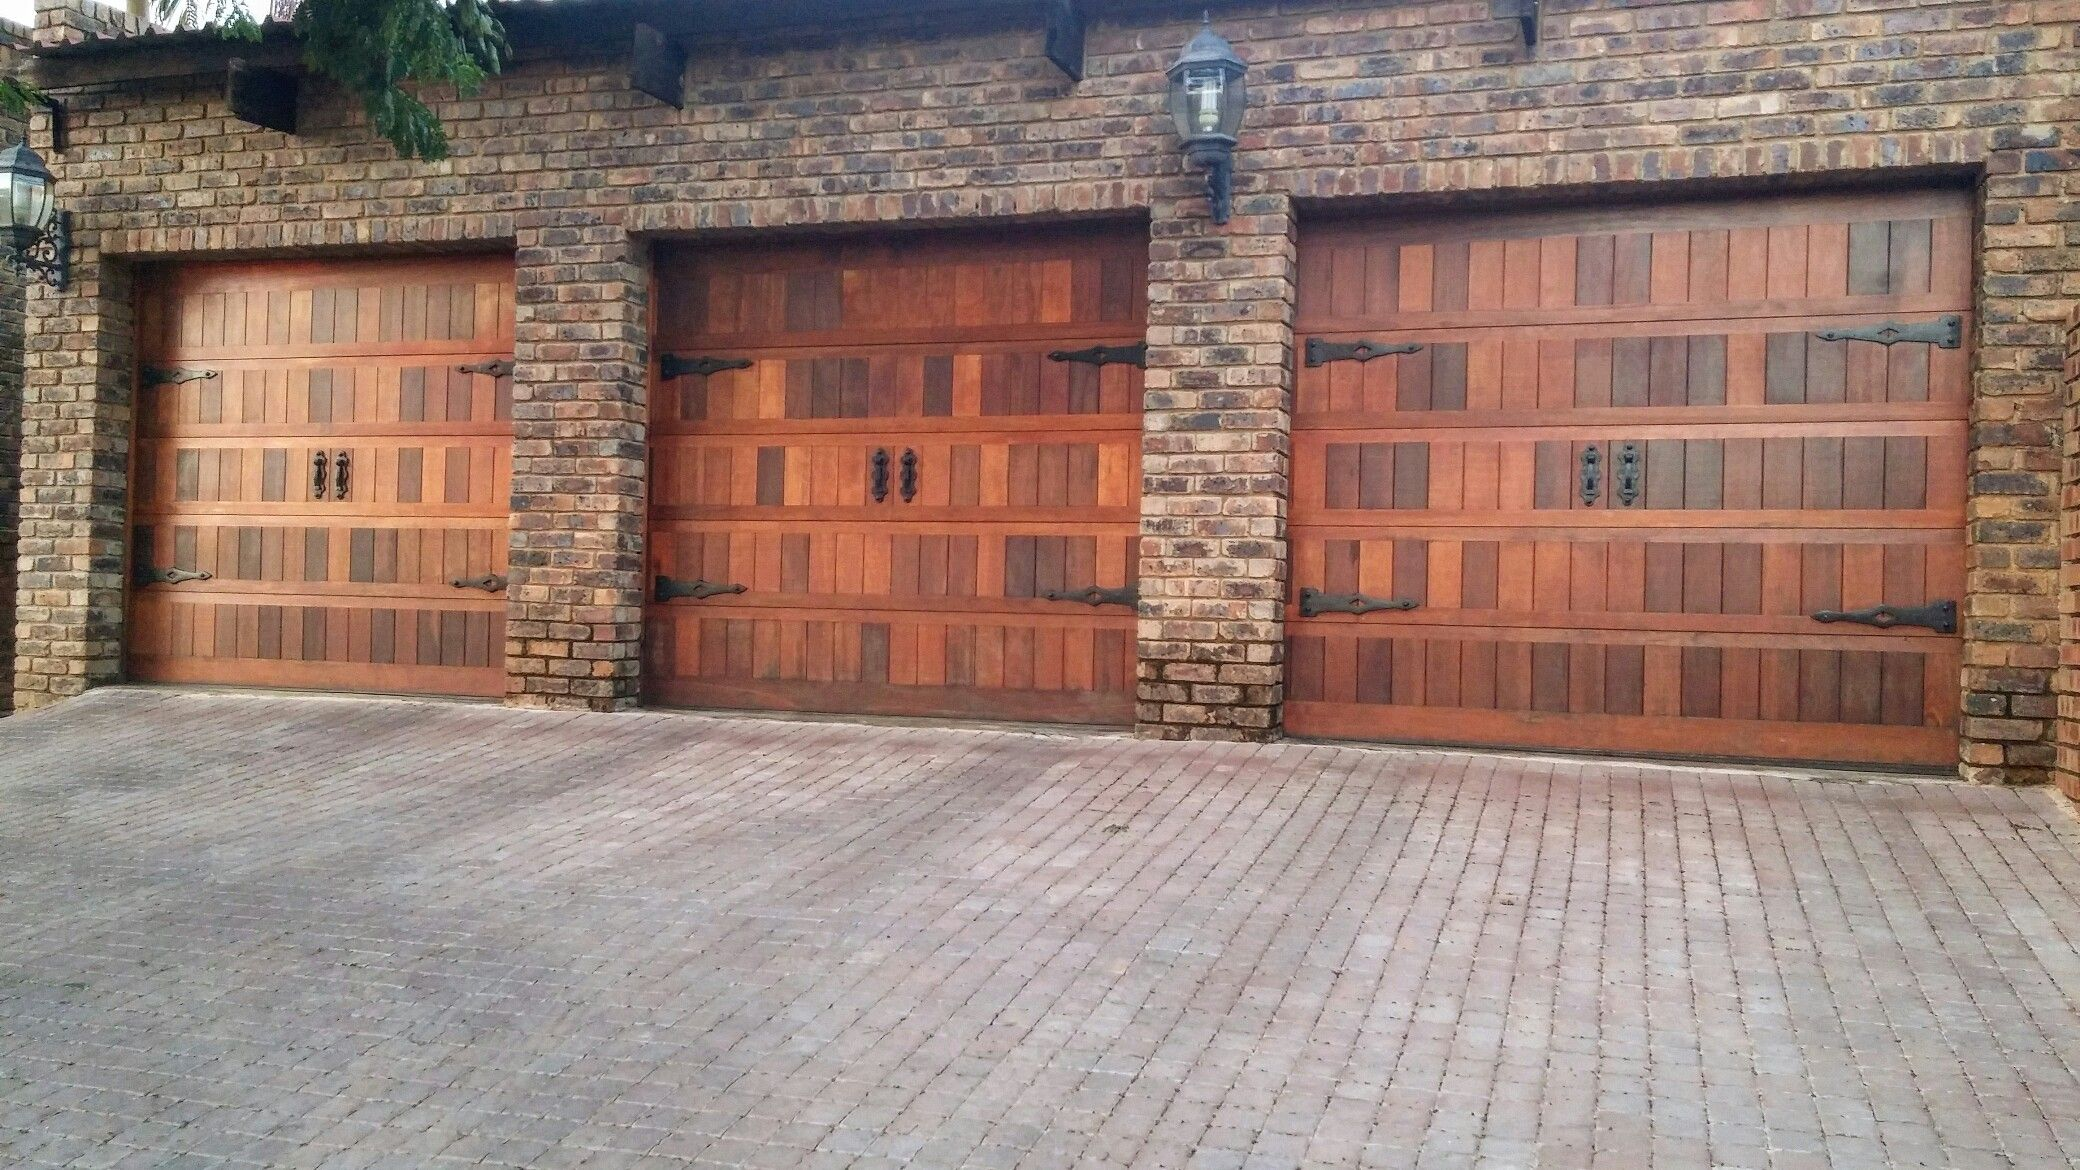 3 single garage doors with mock hinges and handles  Visit -  www.doorstuds.com